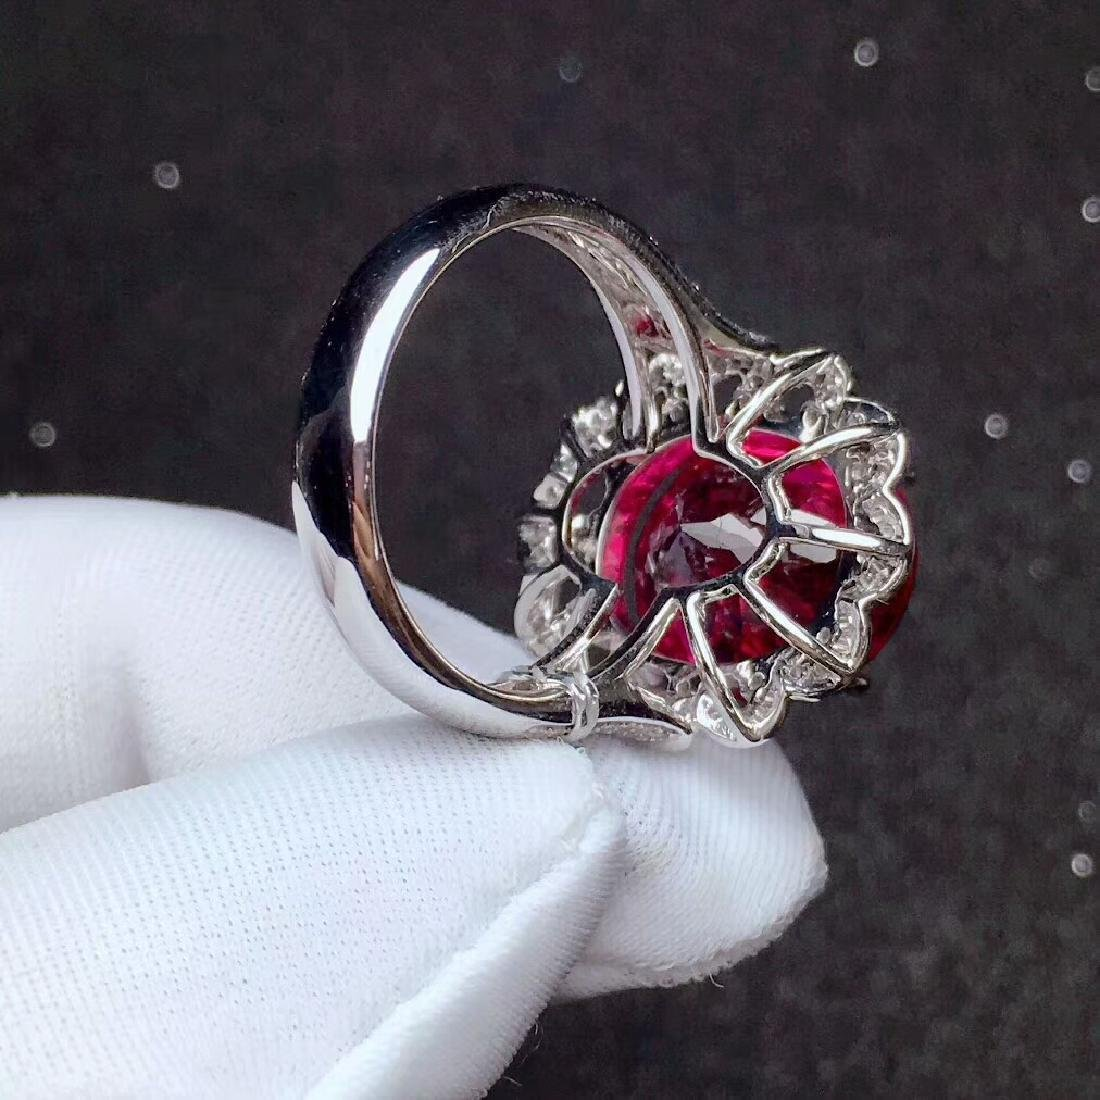 9.8ct Tourmaline Ring in 18kt White Gold - 6